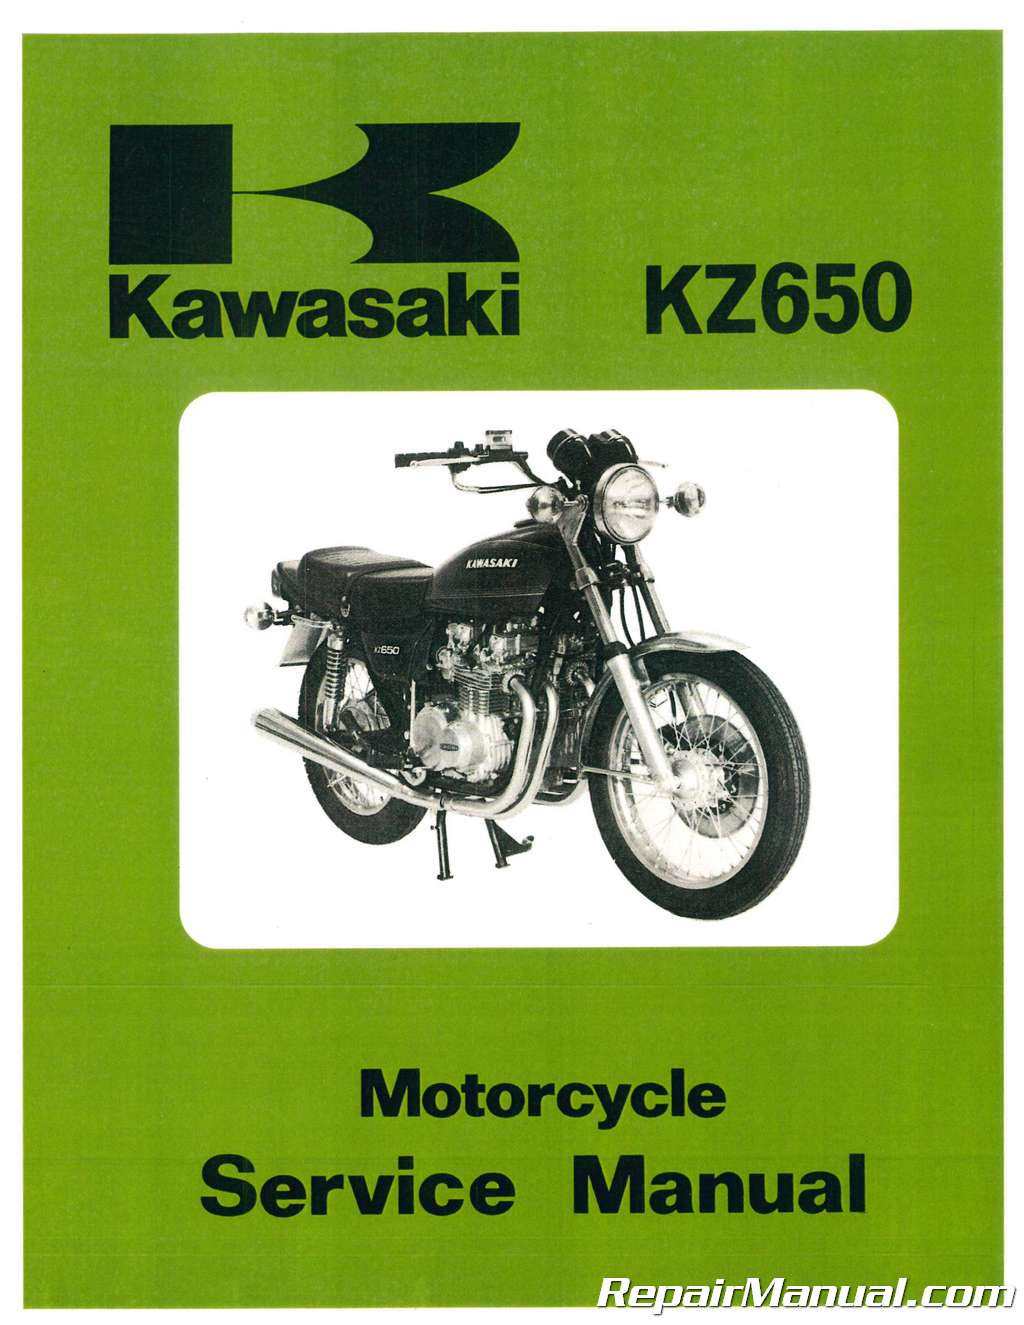 1979 Kz 650 Manual Kawasaki Vulcan 800 Carburetor Diagram Illustrated List Large Inventory Day Shipping Continental Us In The Rest Of World Just Moving Out Country Have Sell Everything Low Mileage